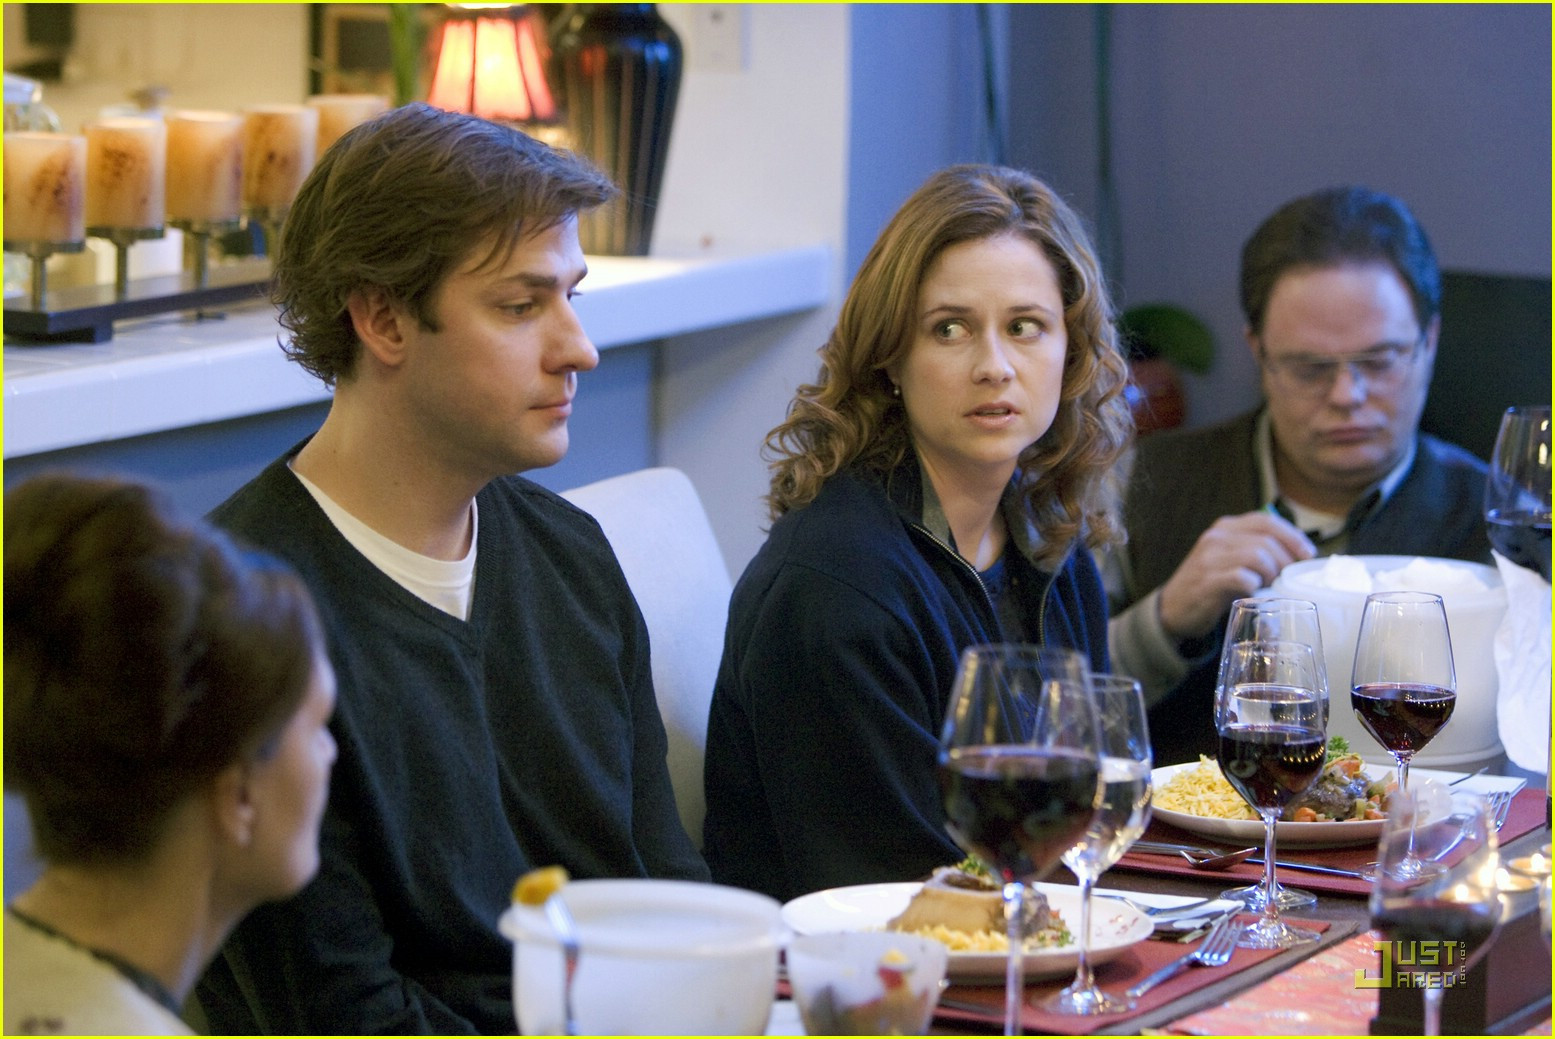 The Office Dinner Party  Top 5 The Best Episodes of The fice